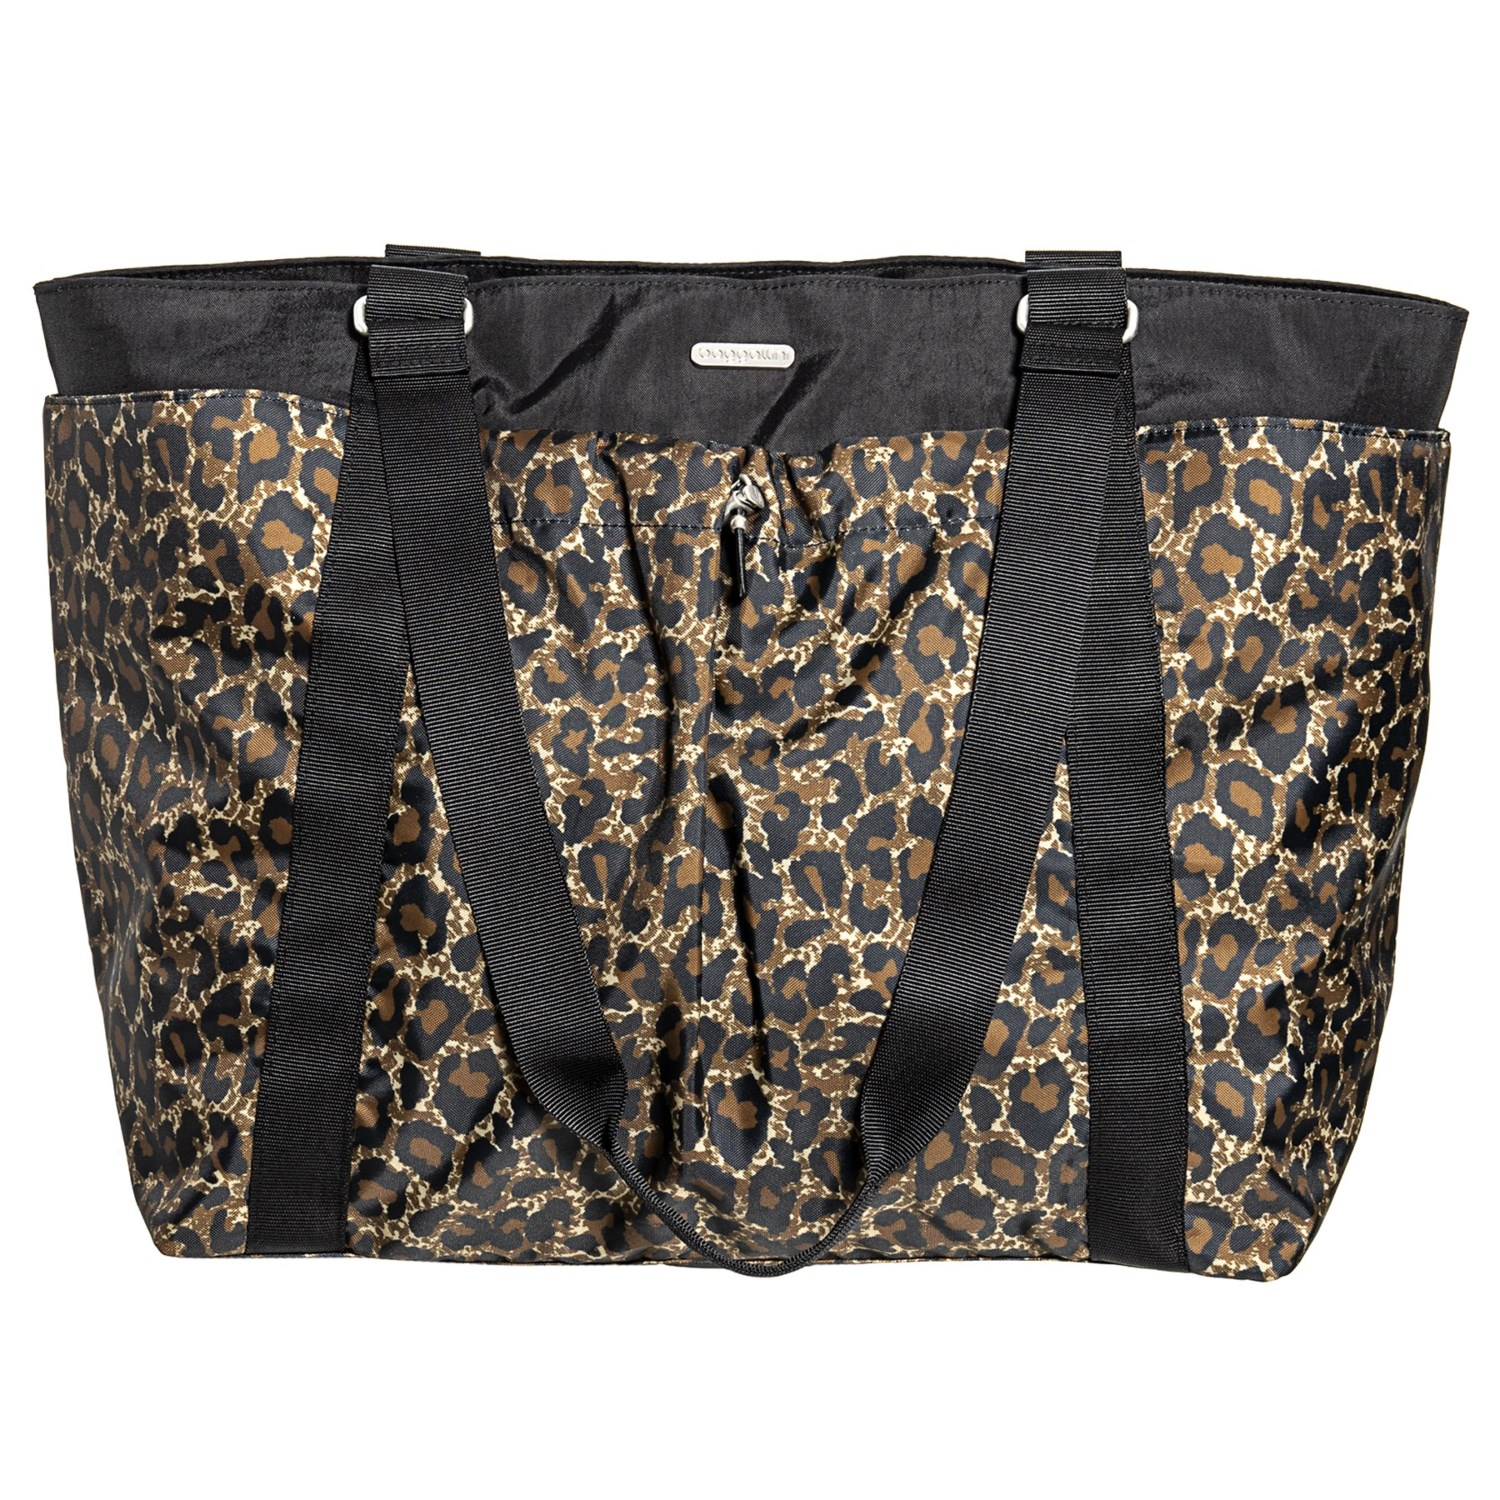 ba910e8f5db baggallini Have It All Weekender Bag (For Women) in Wild Cheetah Multi .